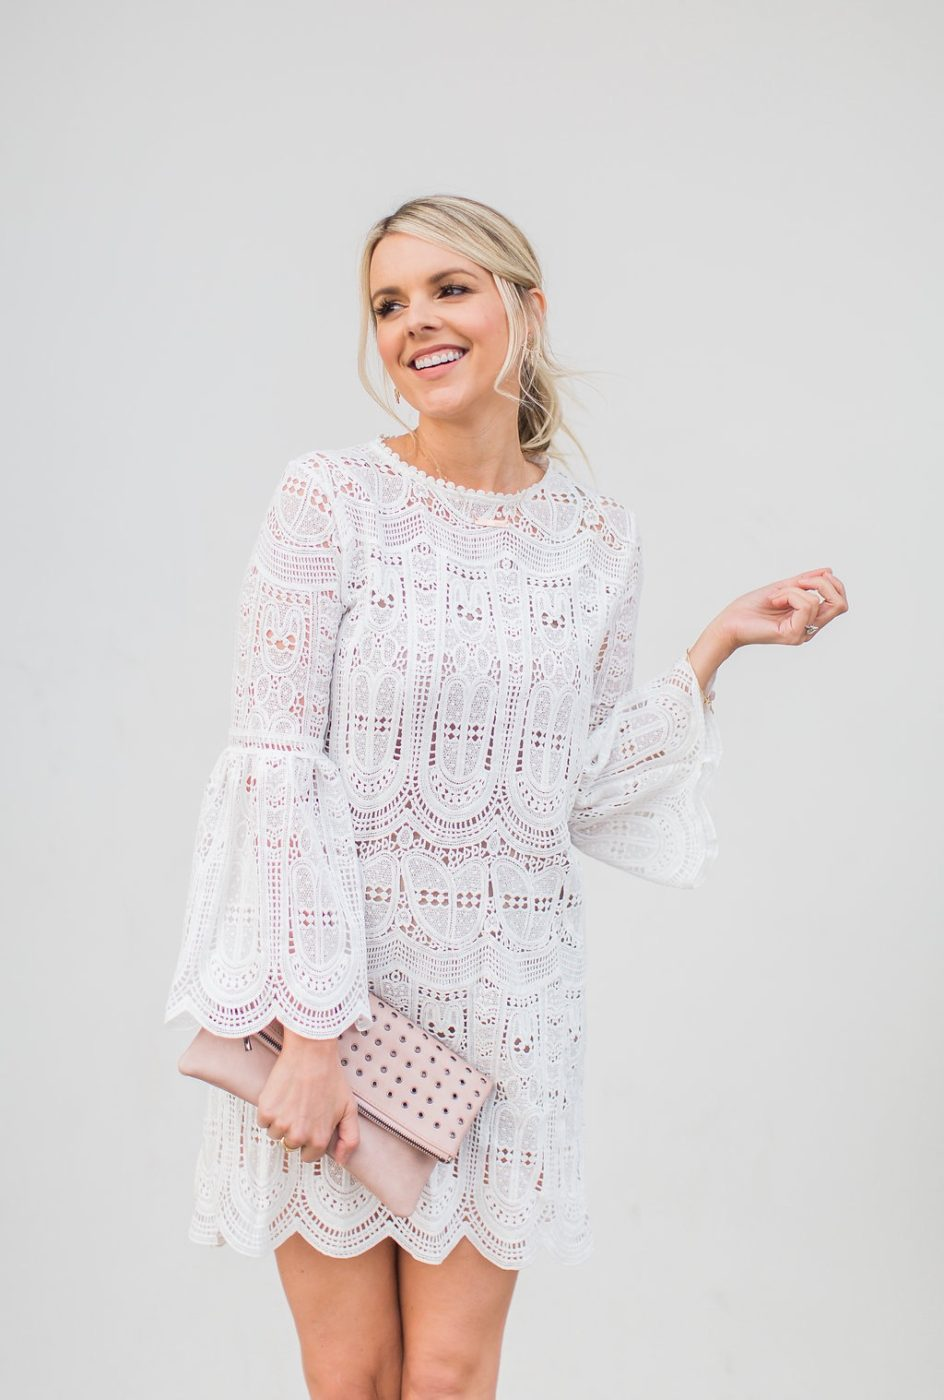 White Lace Dress – Winter White